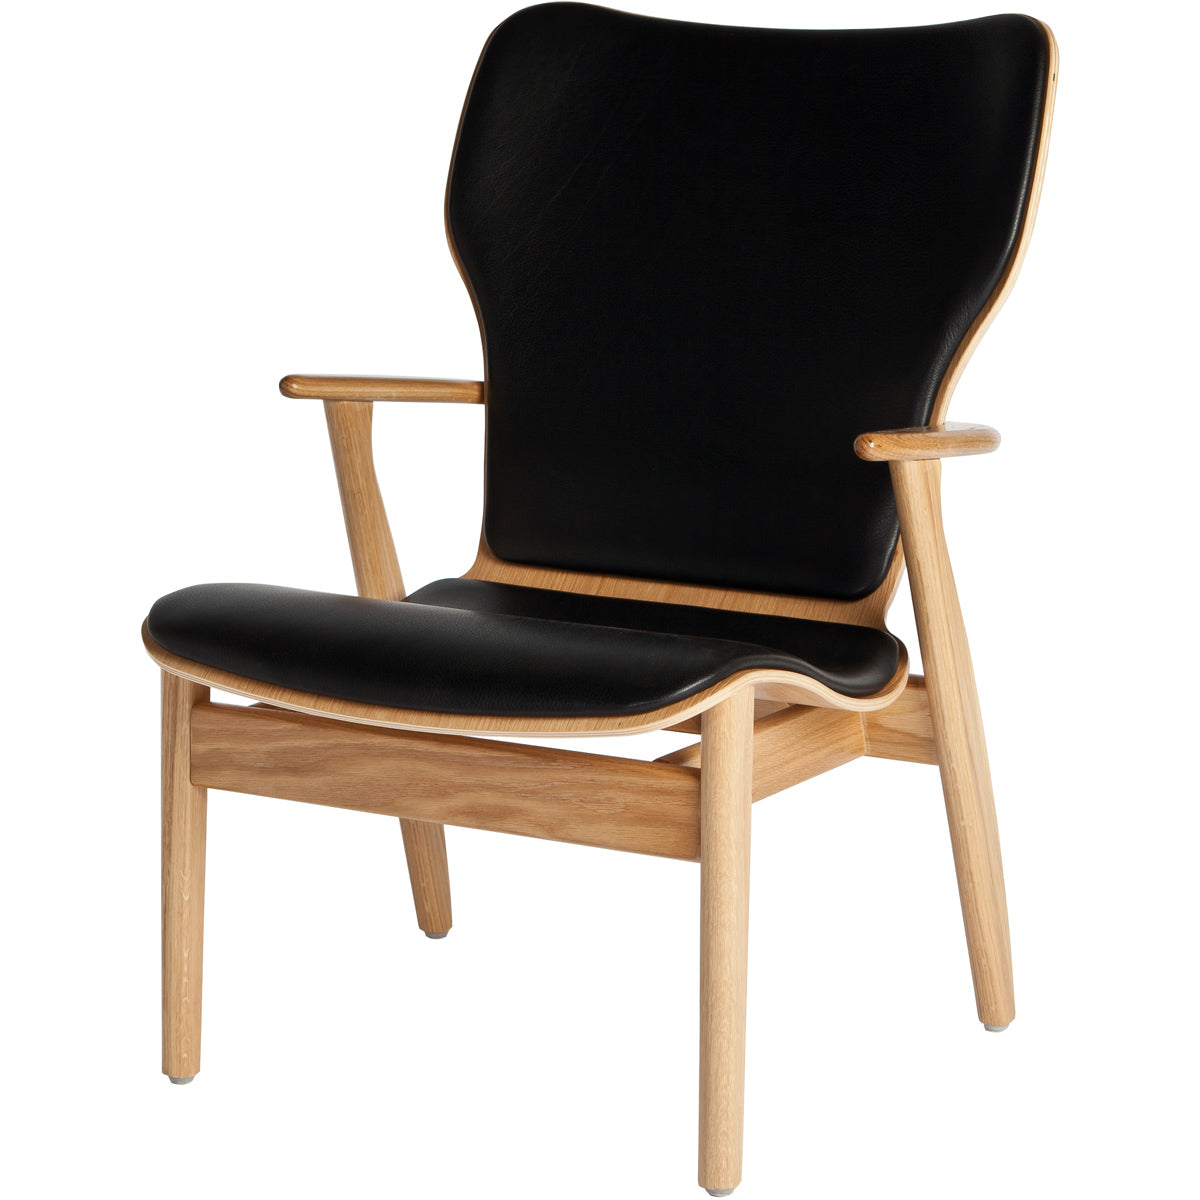 Domus Lounge Chair - Oak/Leather - Black Leather